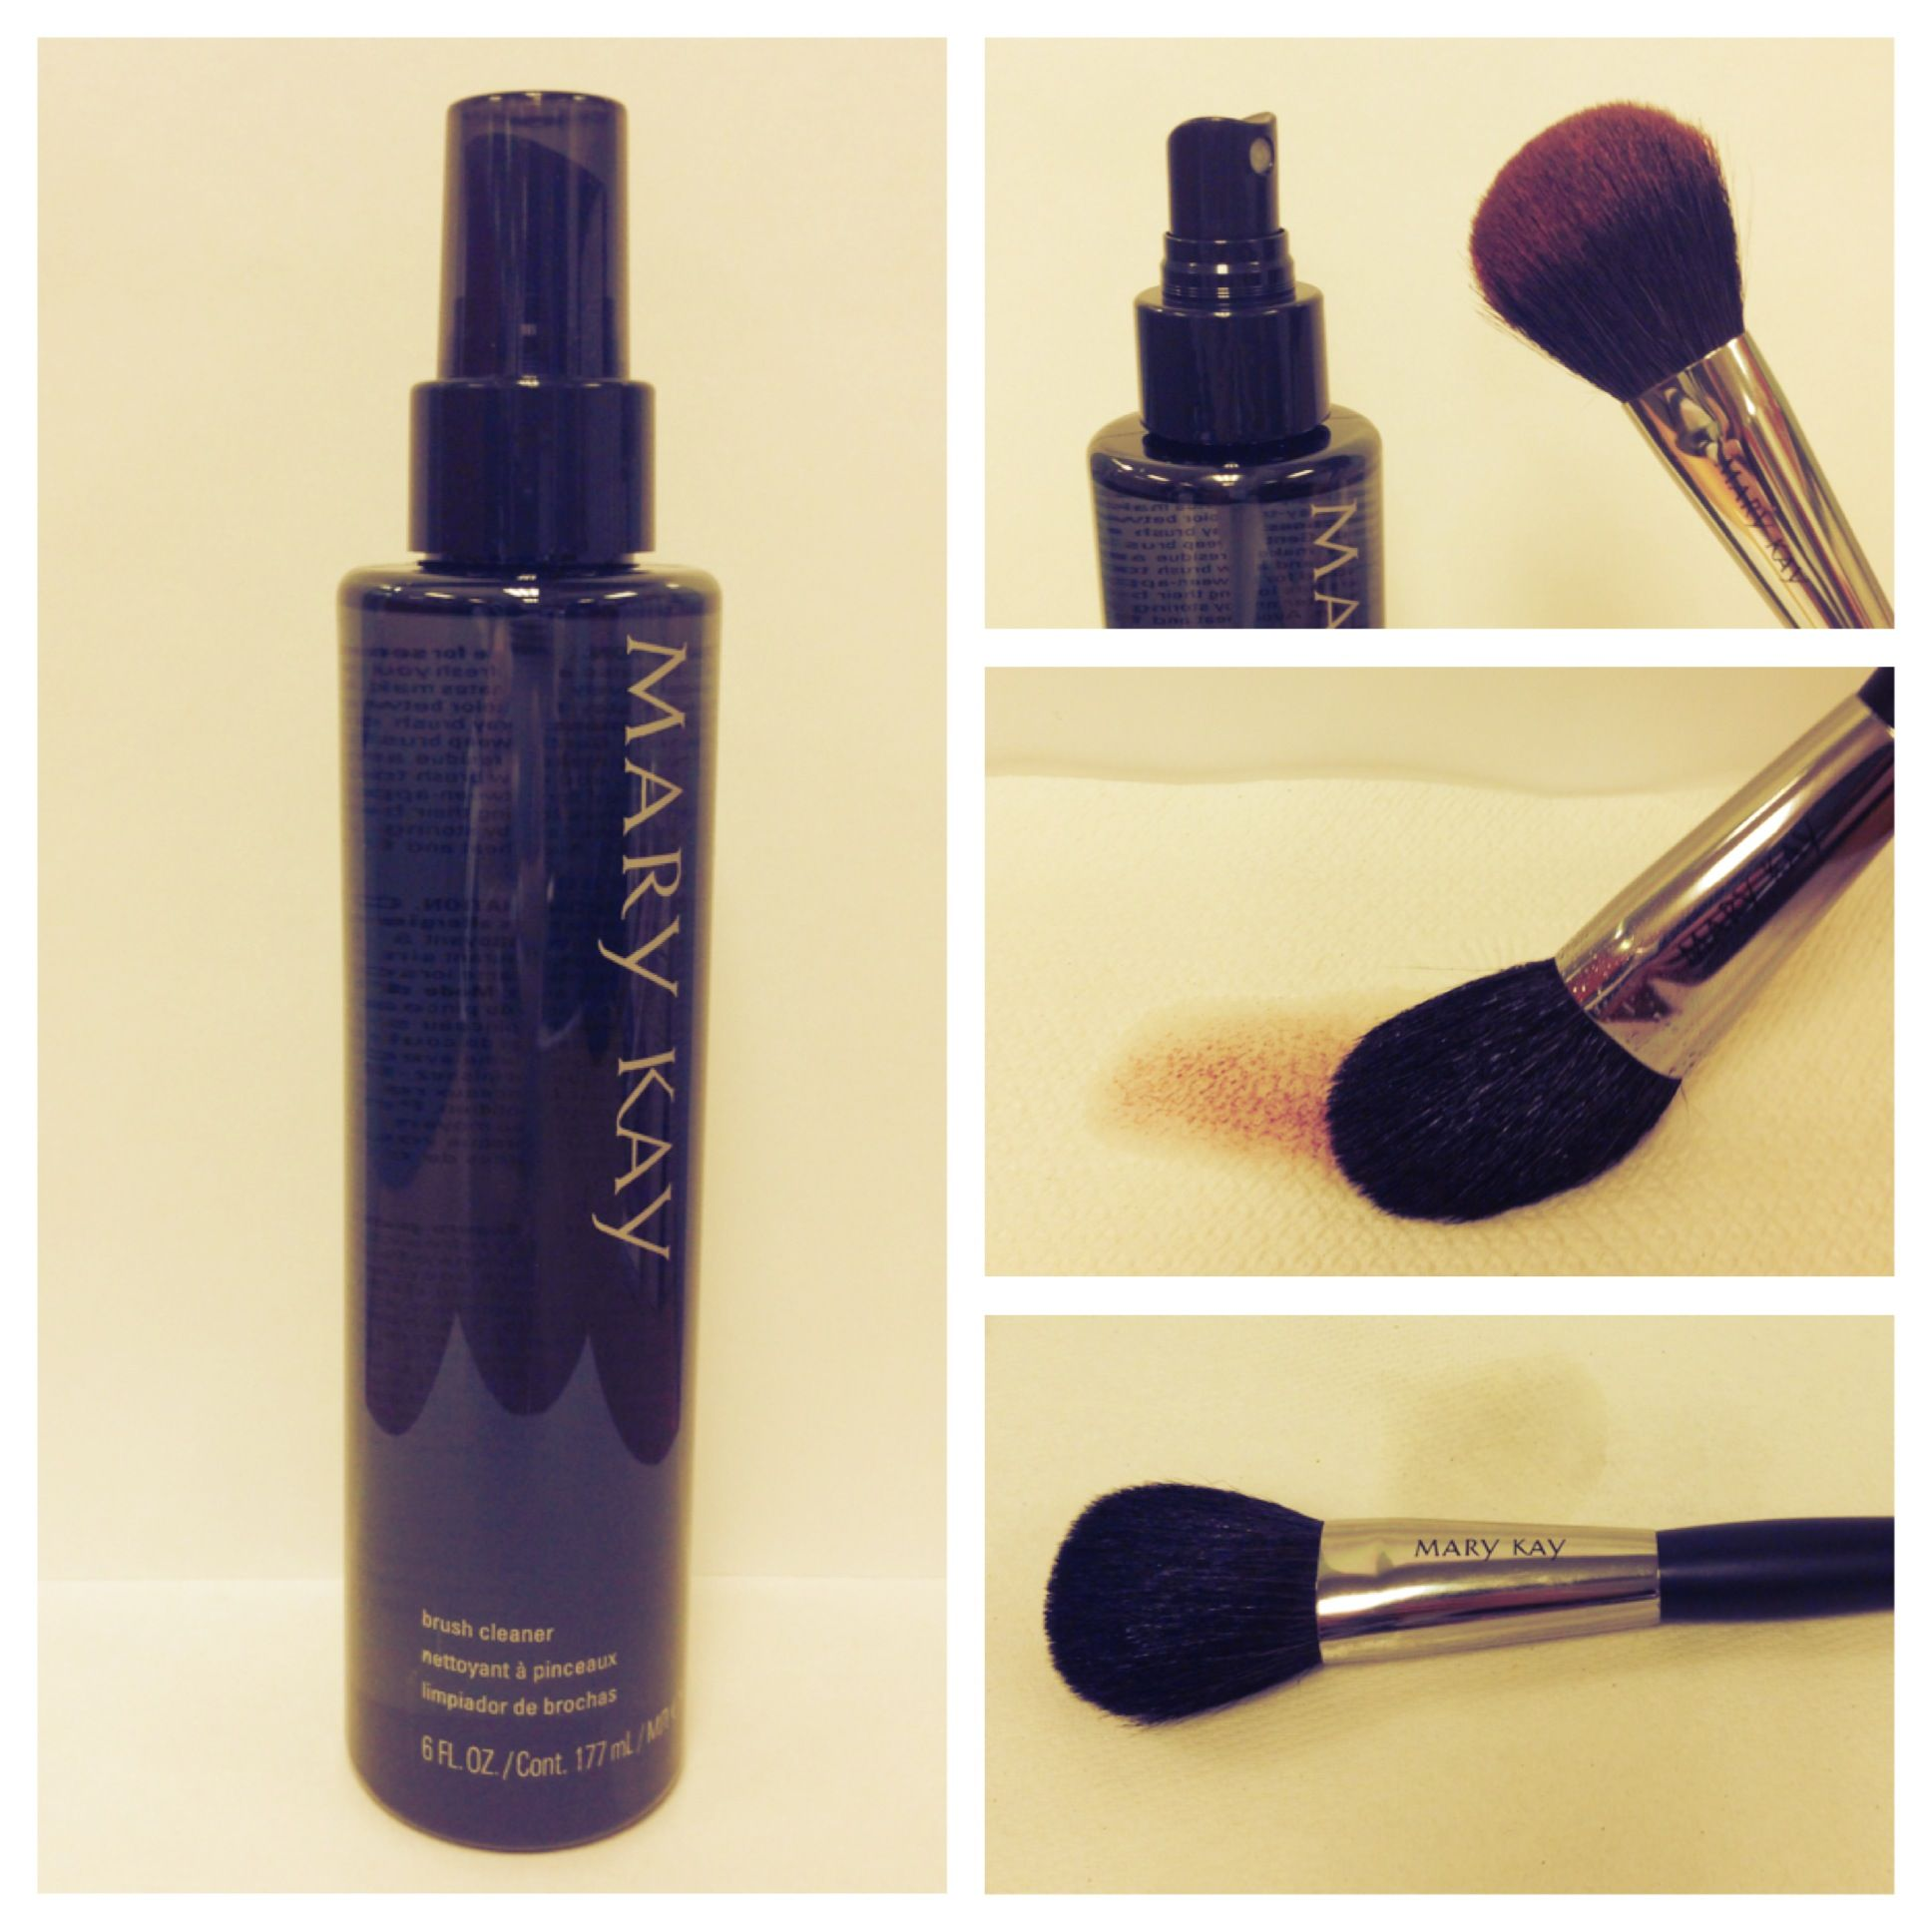 Did you know? Regular use of the Mary Kay® Brush Cleaner